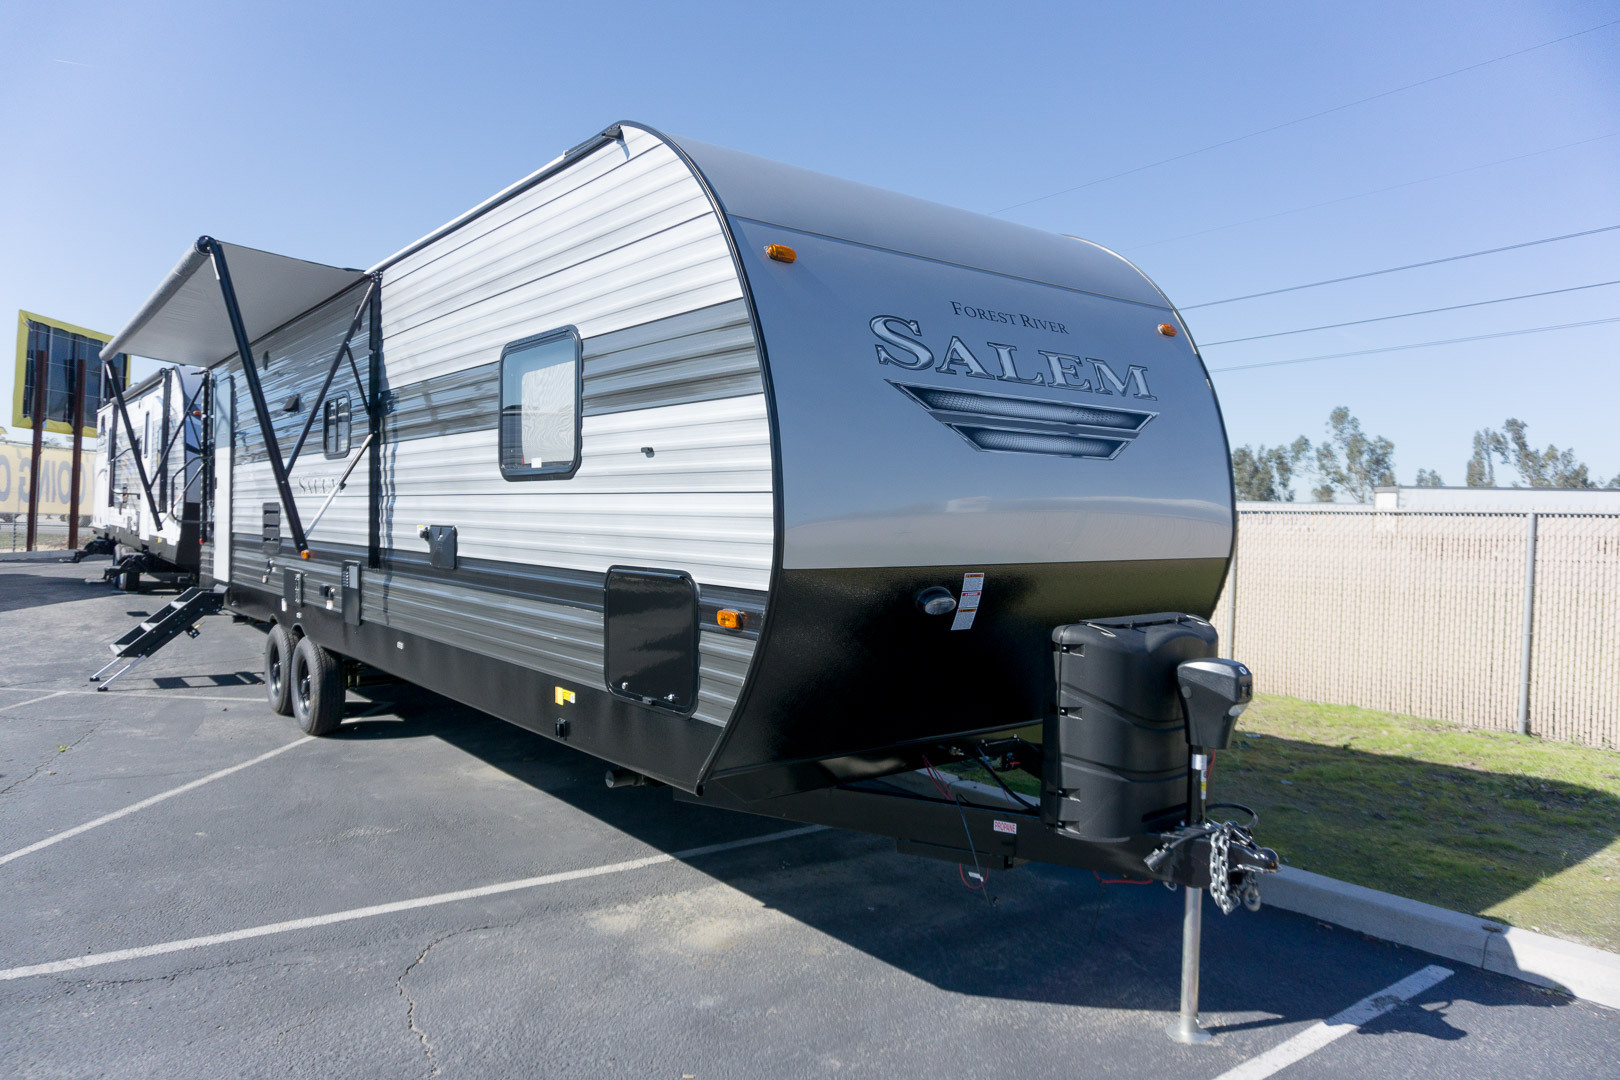 2019 FOREST RIVER SALEM 28RLSS